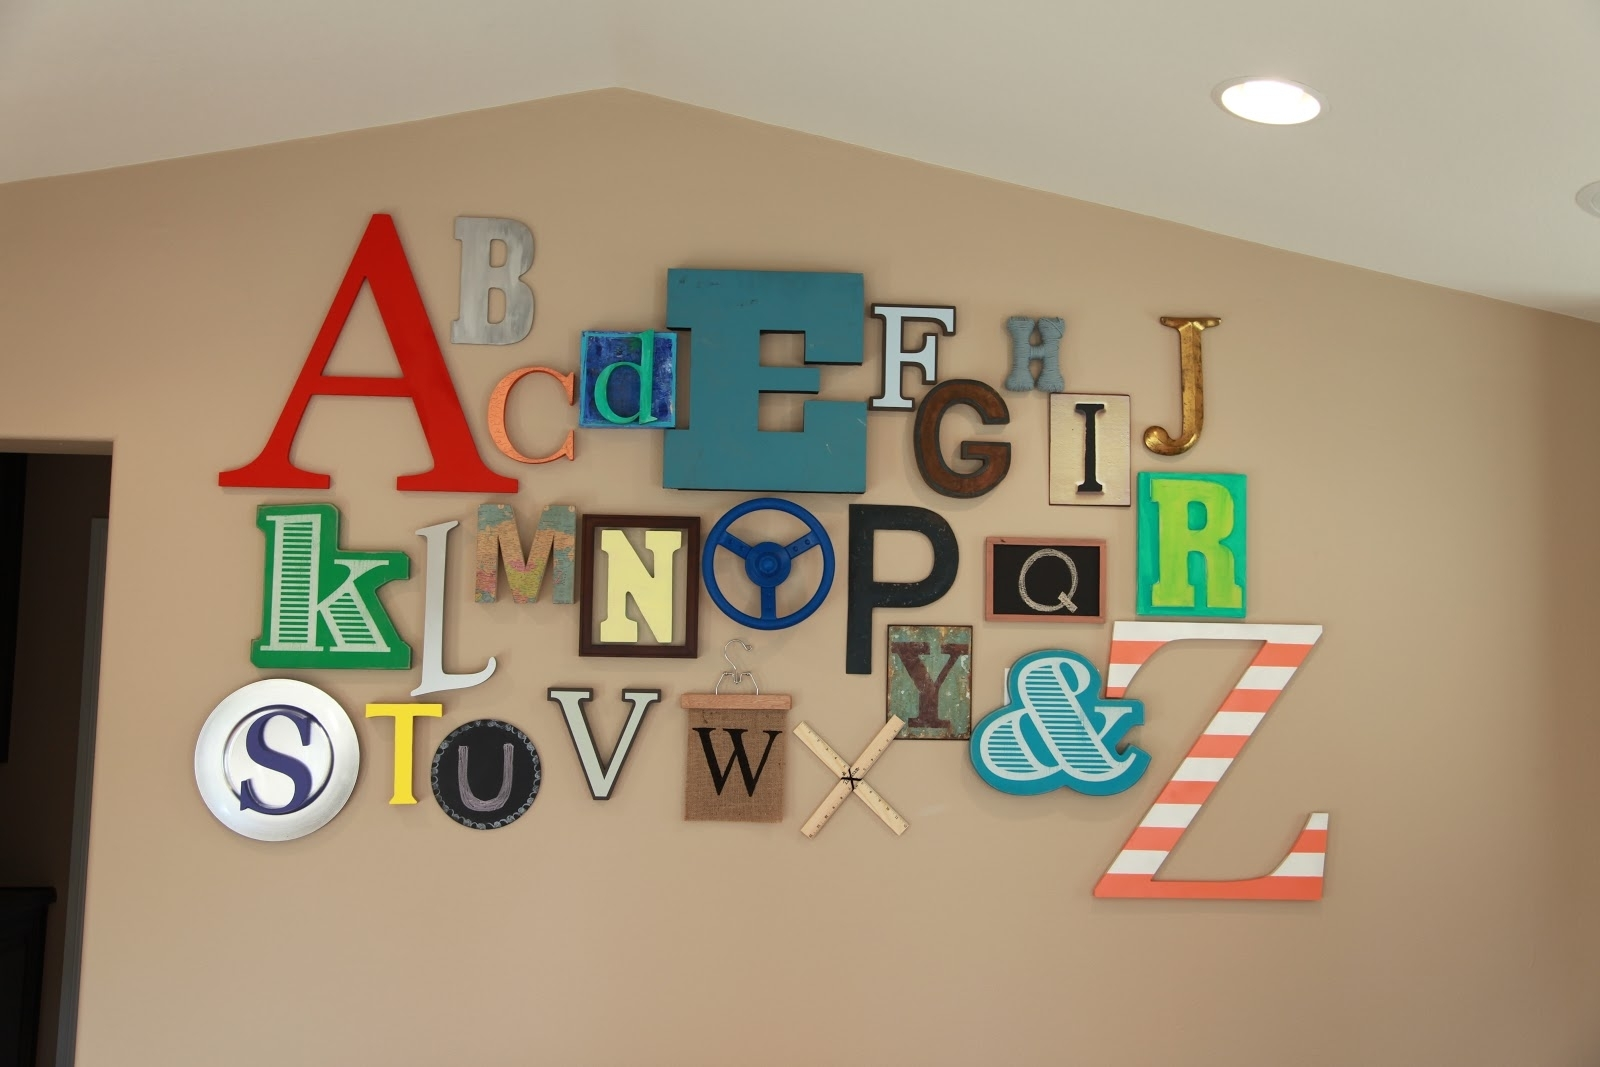 Abc Alphabet Wall • Color Made Happy In Recent Alphabet Wall Art (View 3 of 20)